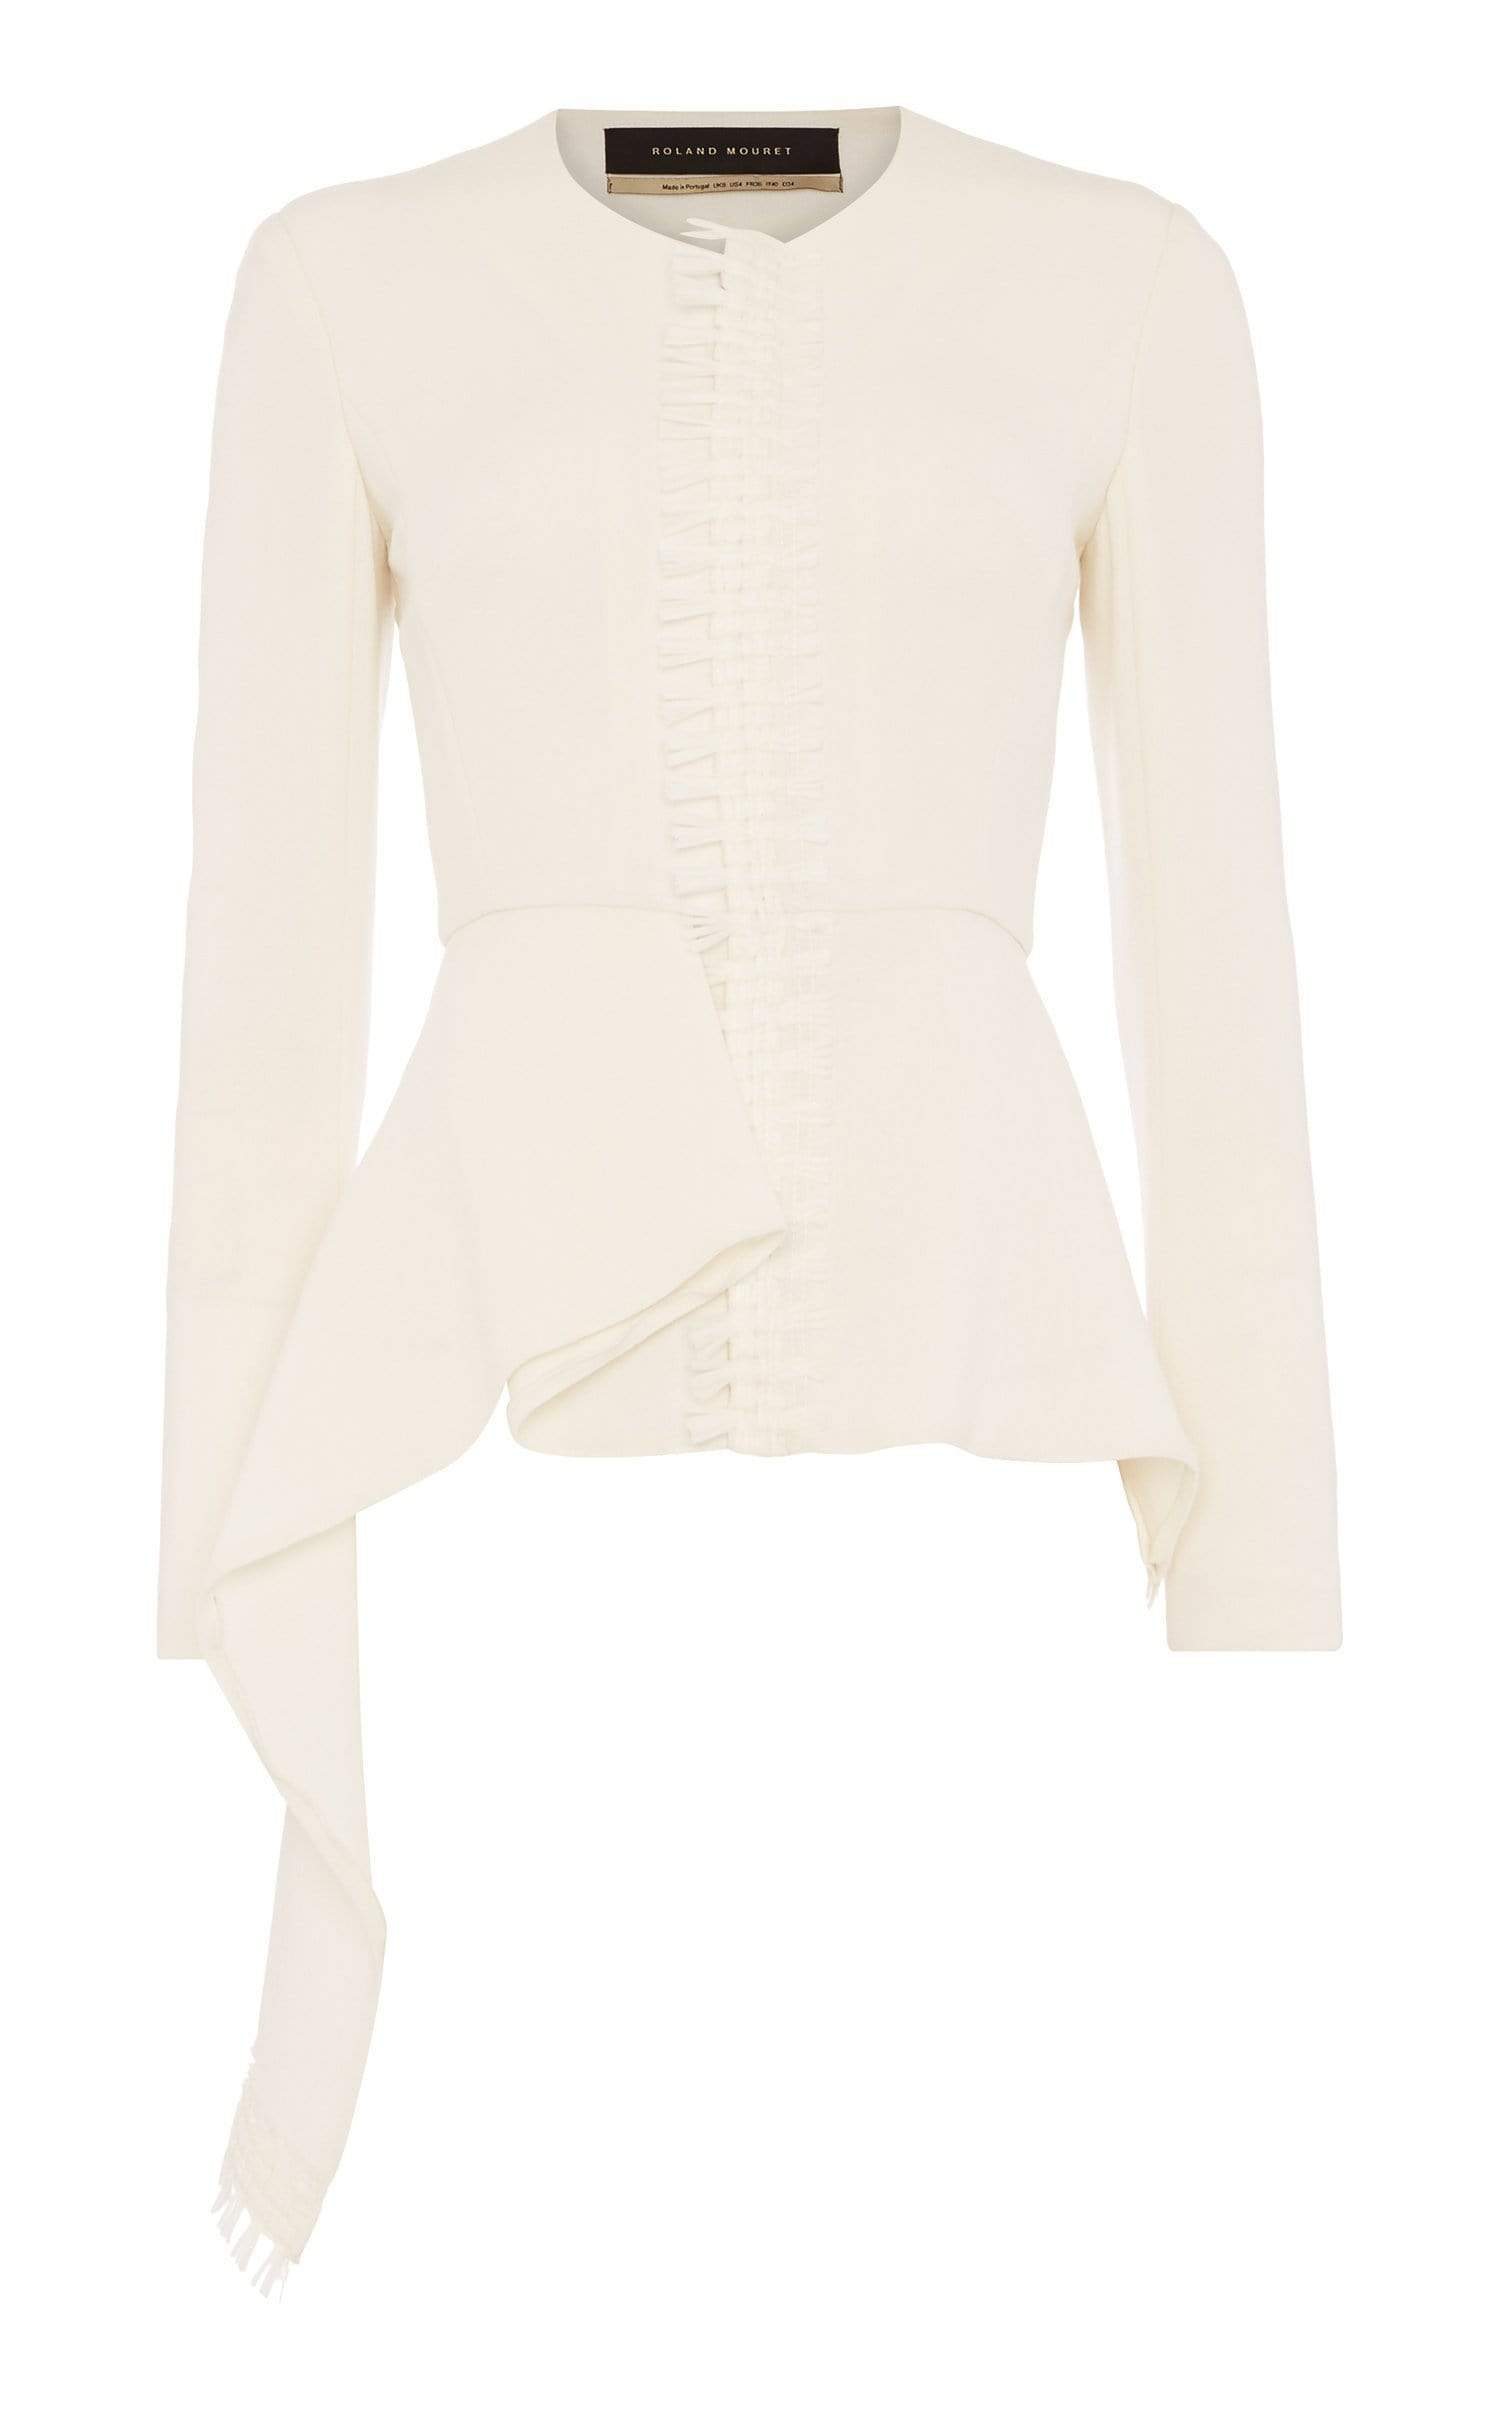 Greenwood Jacket In White from Roland Mouret